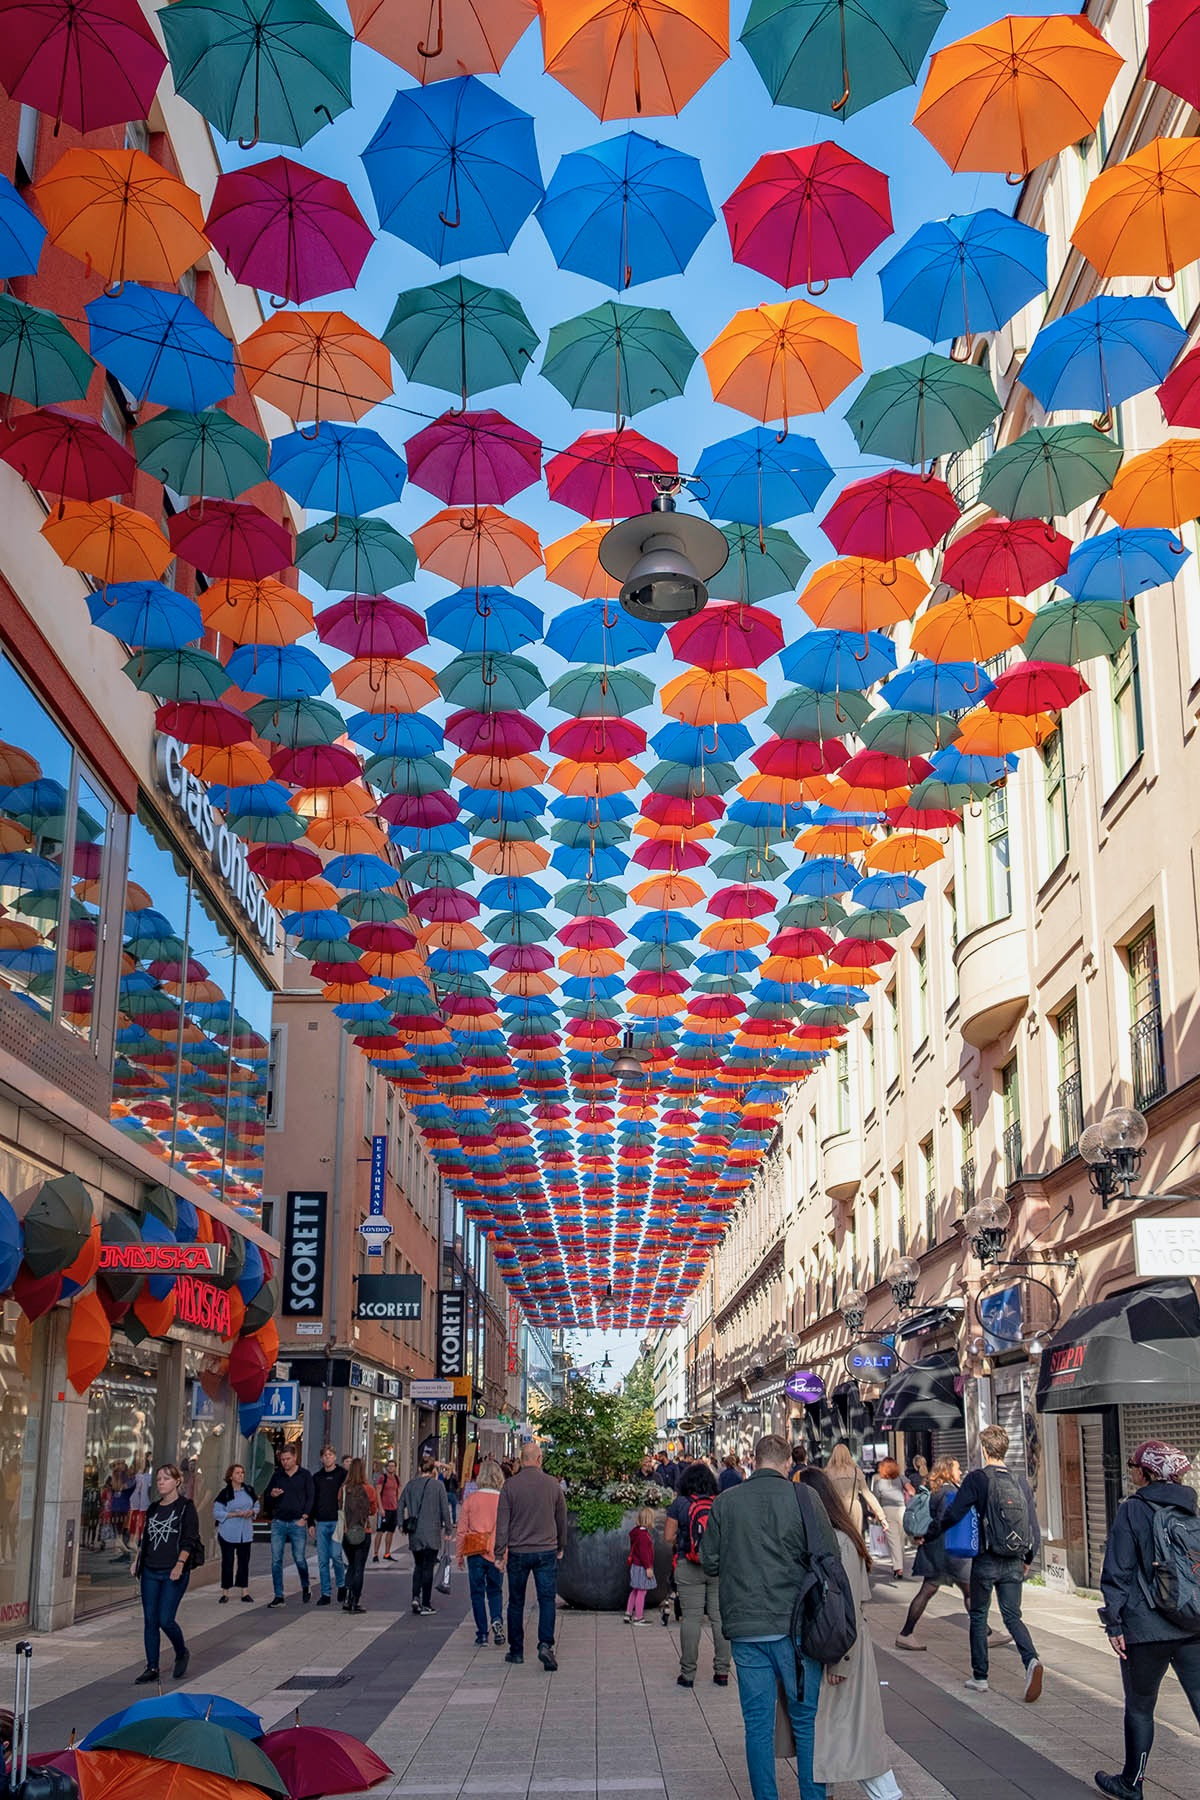 Umbrella Sky Project x Indiska, Stockholm